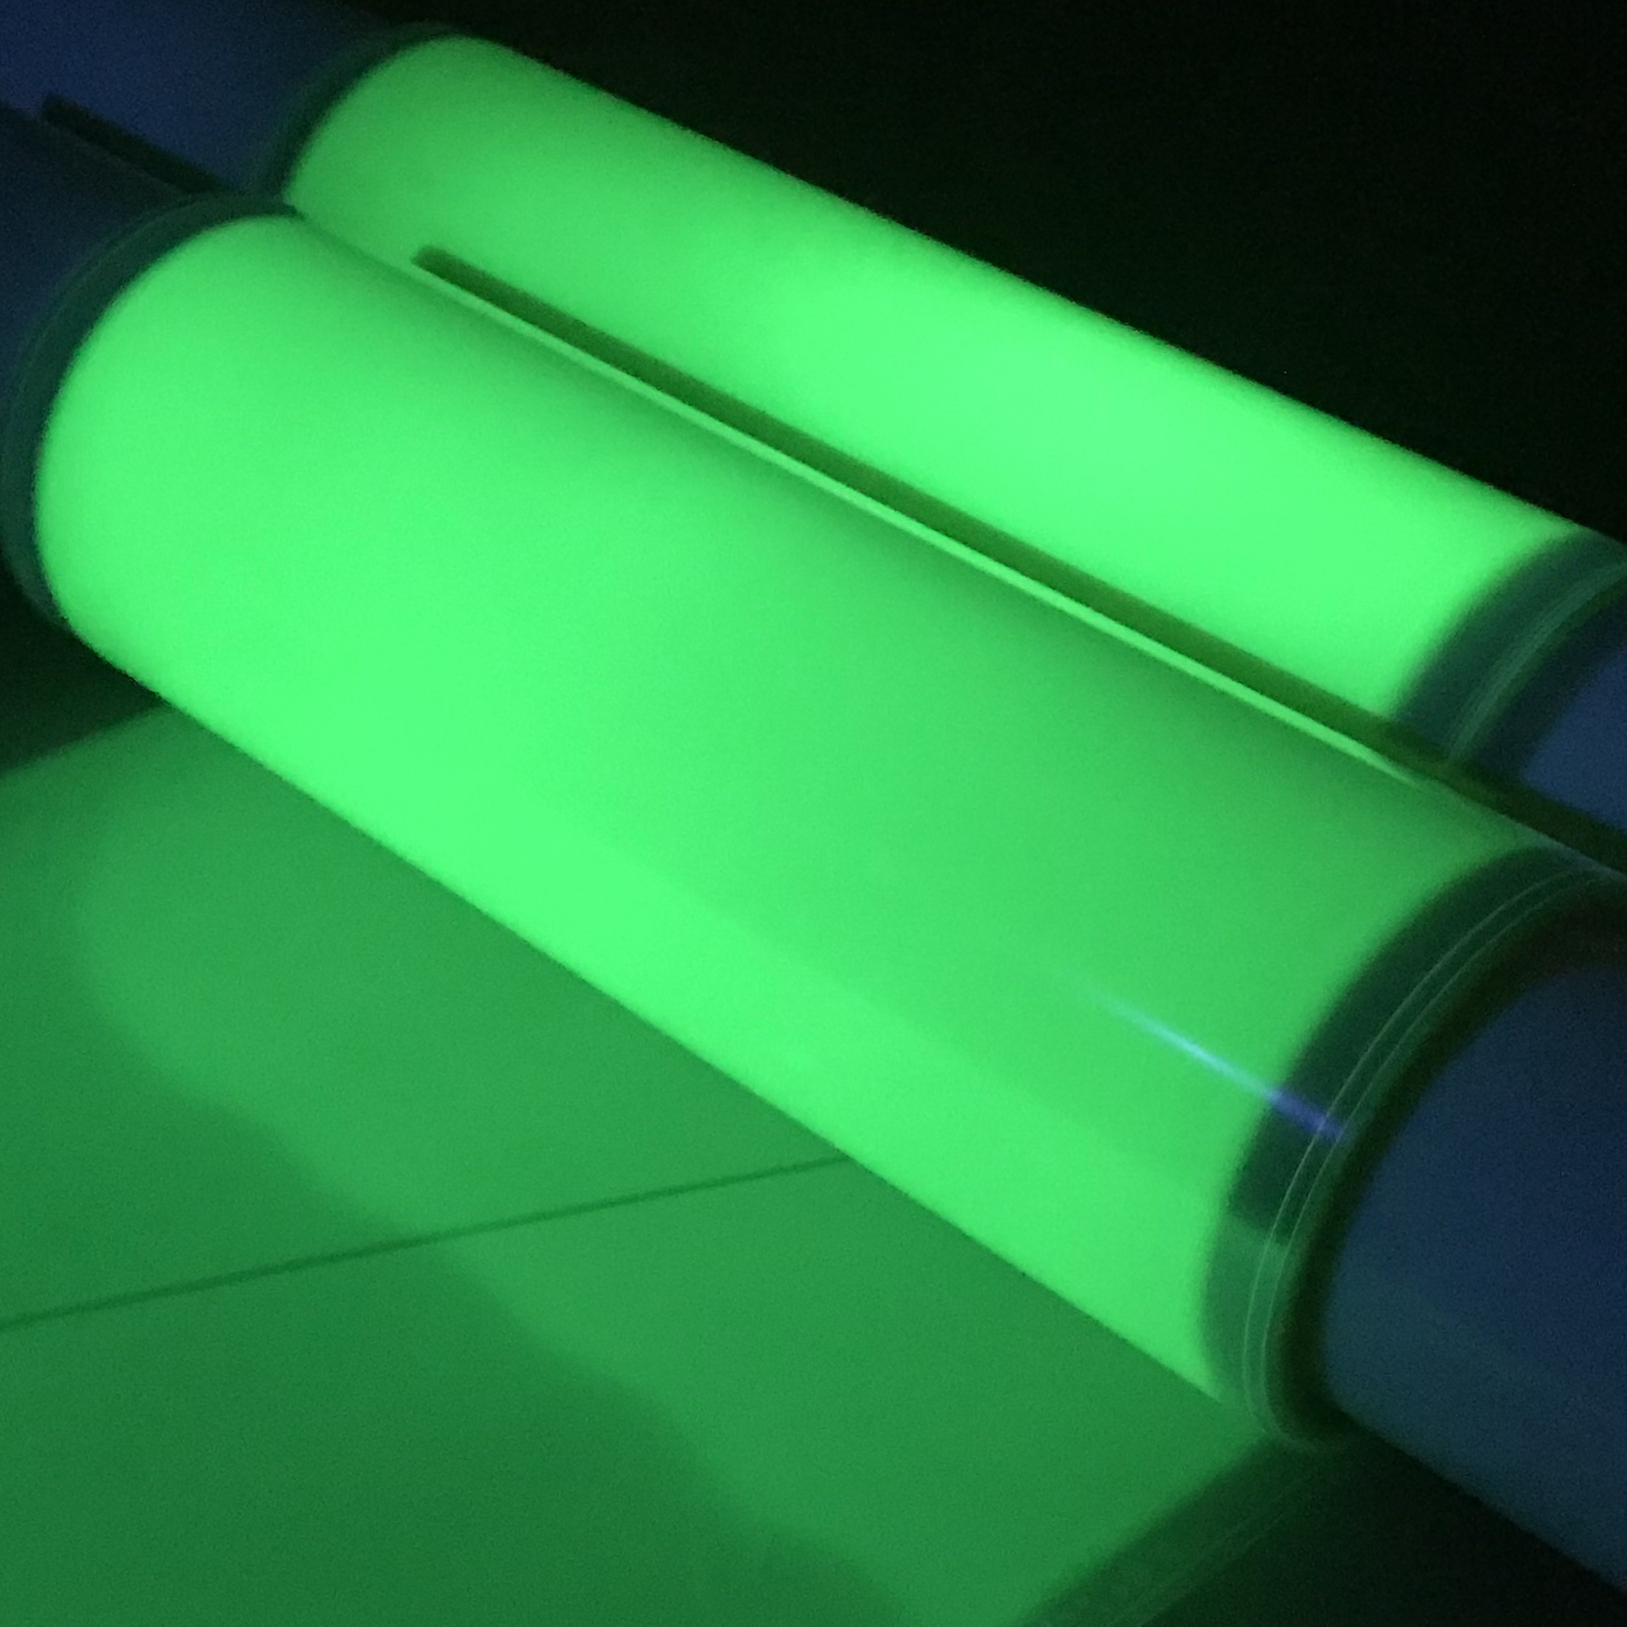 Nanolumi Chameleon® G Film: Viewing colours in all their brightness and glory